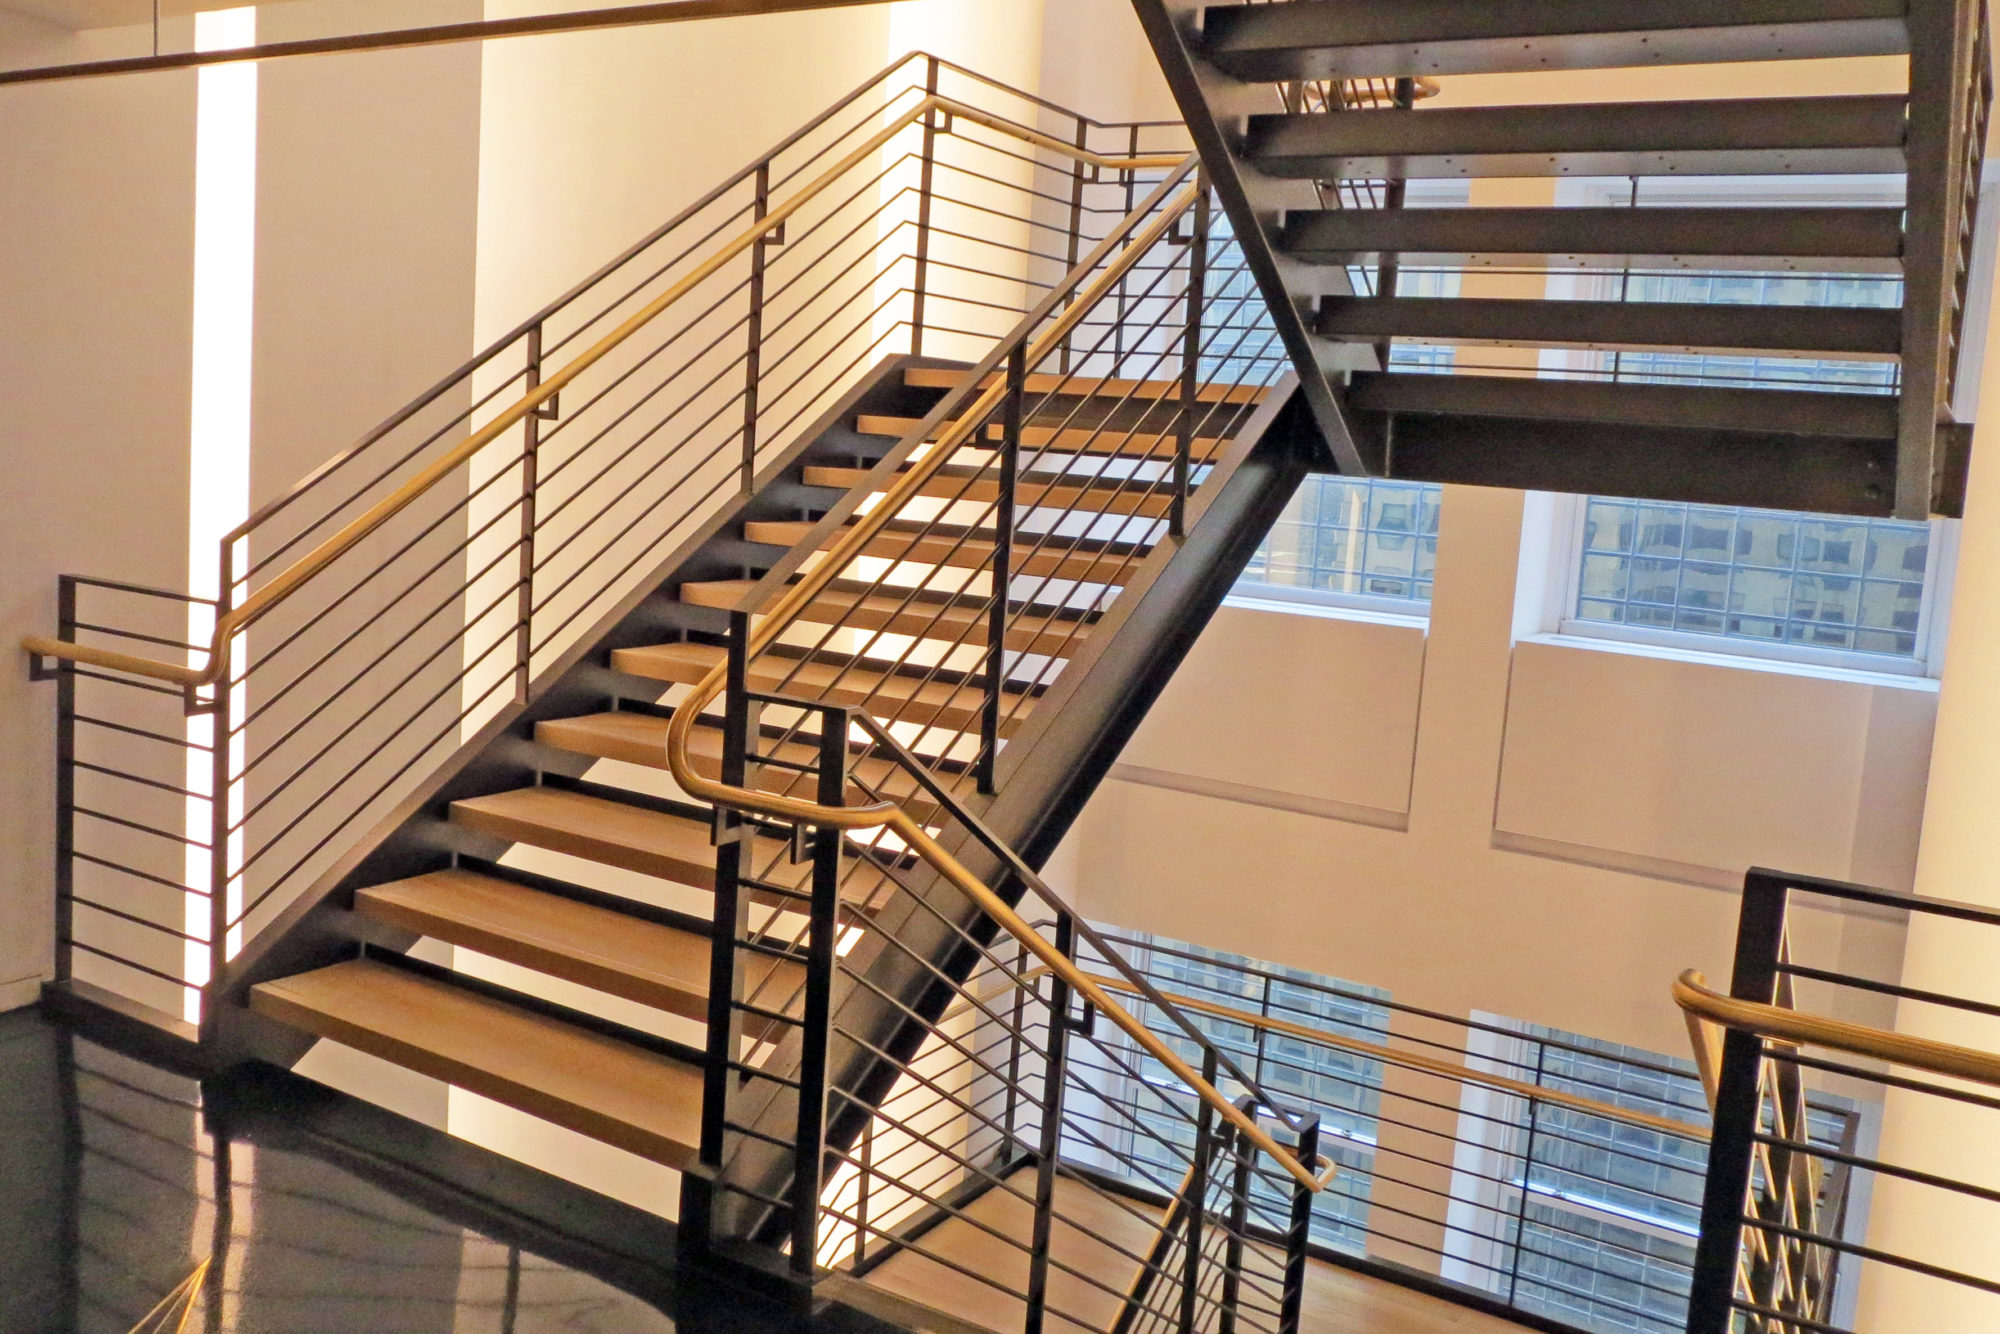 Reasons For Choosing Stainless Steel Balustrades In Sydney